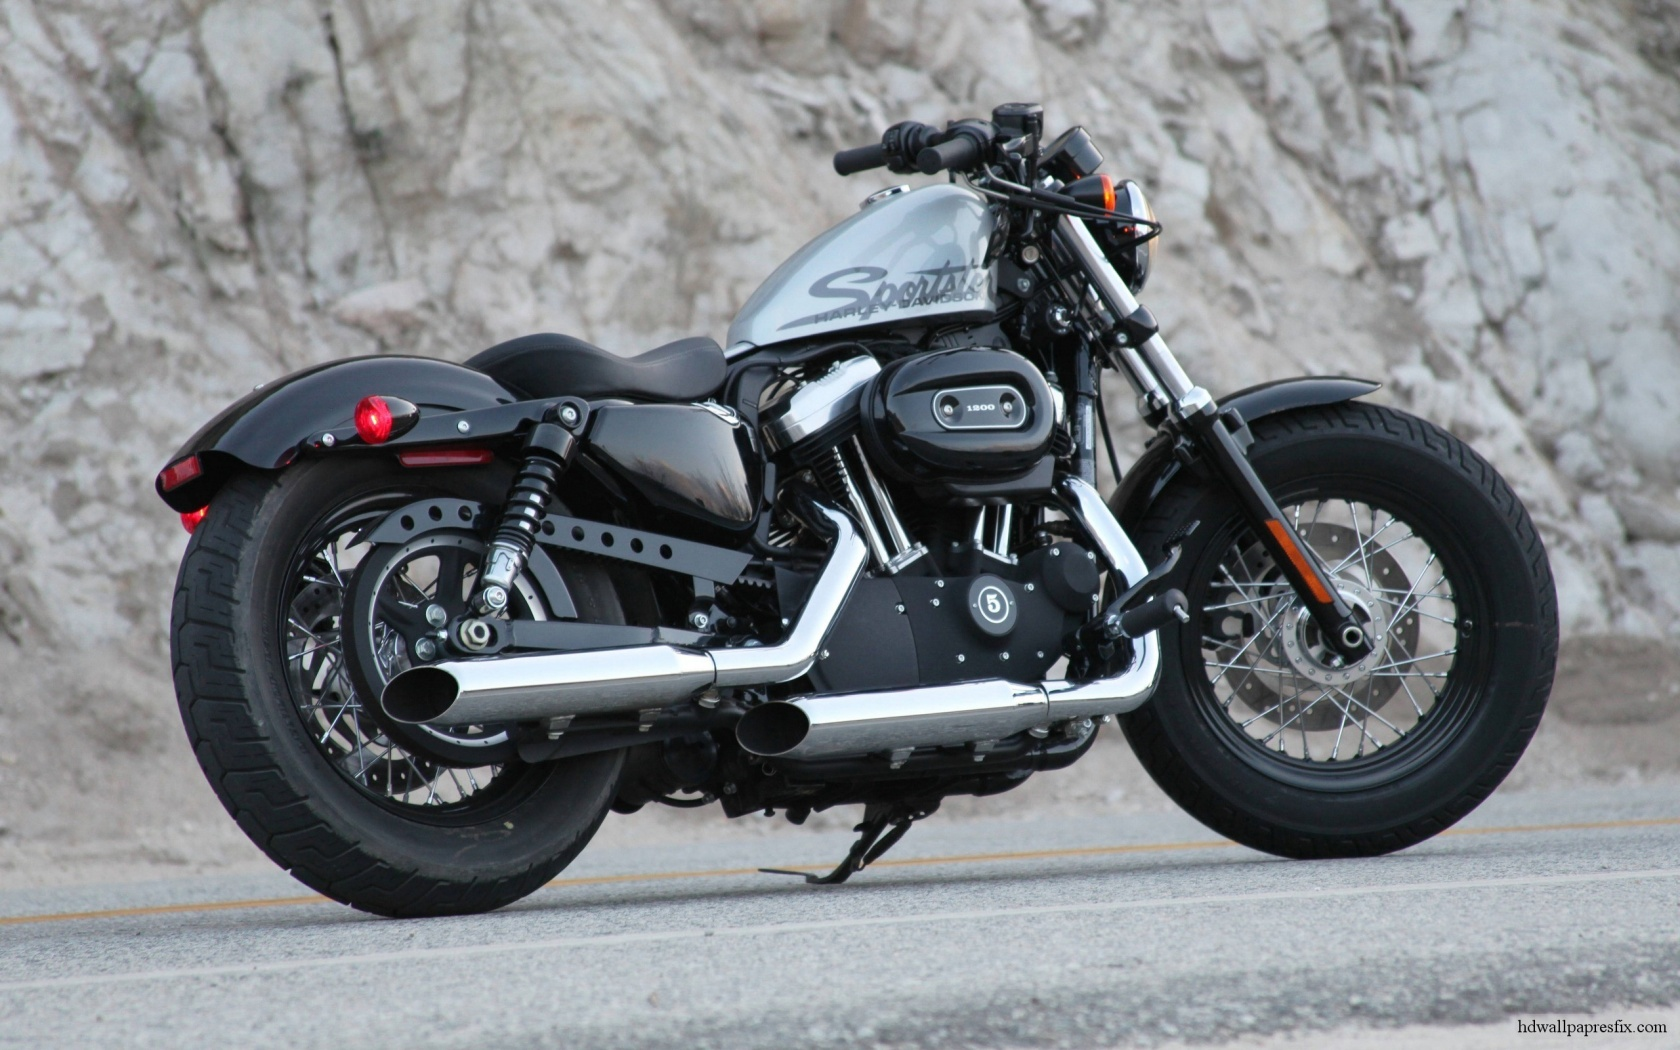 Harley Davidson Wallpapers Motorcycle 1680x1050